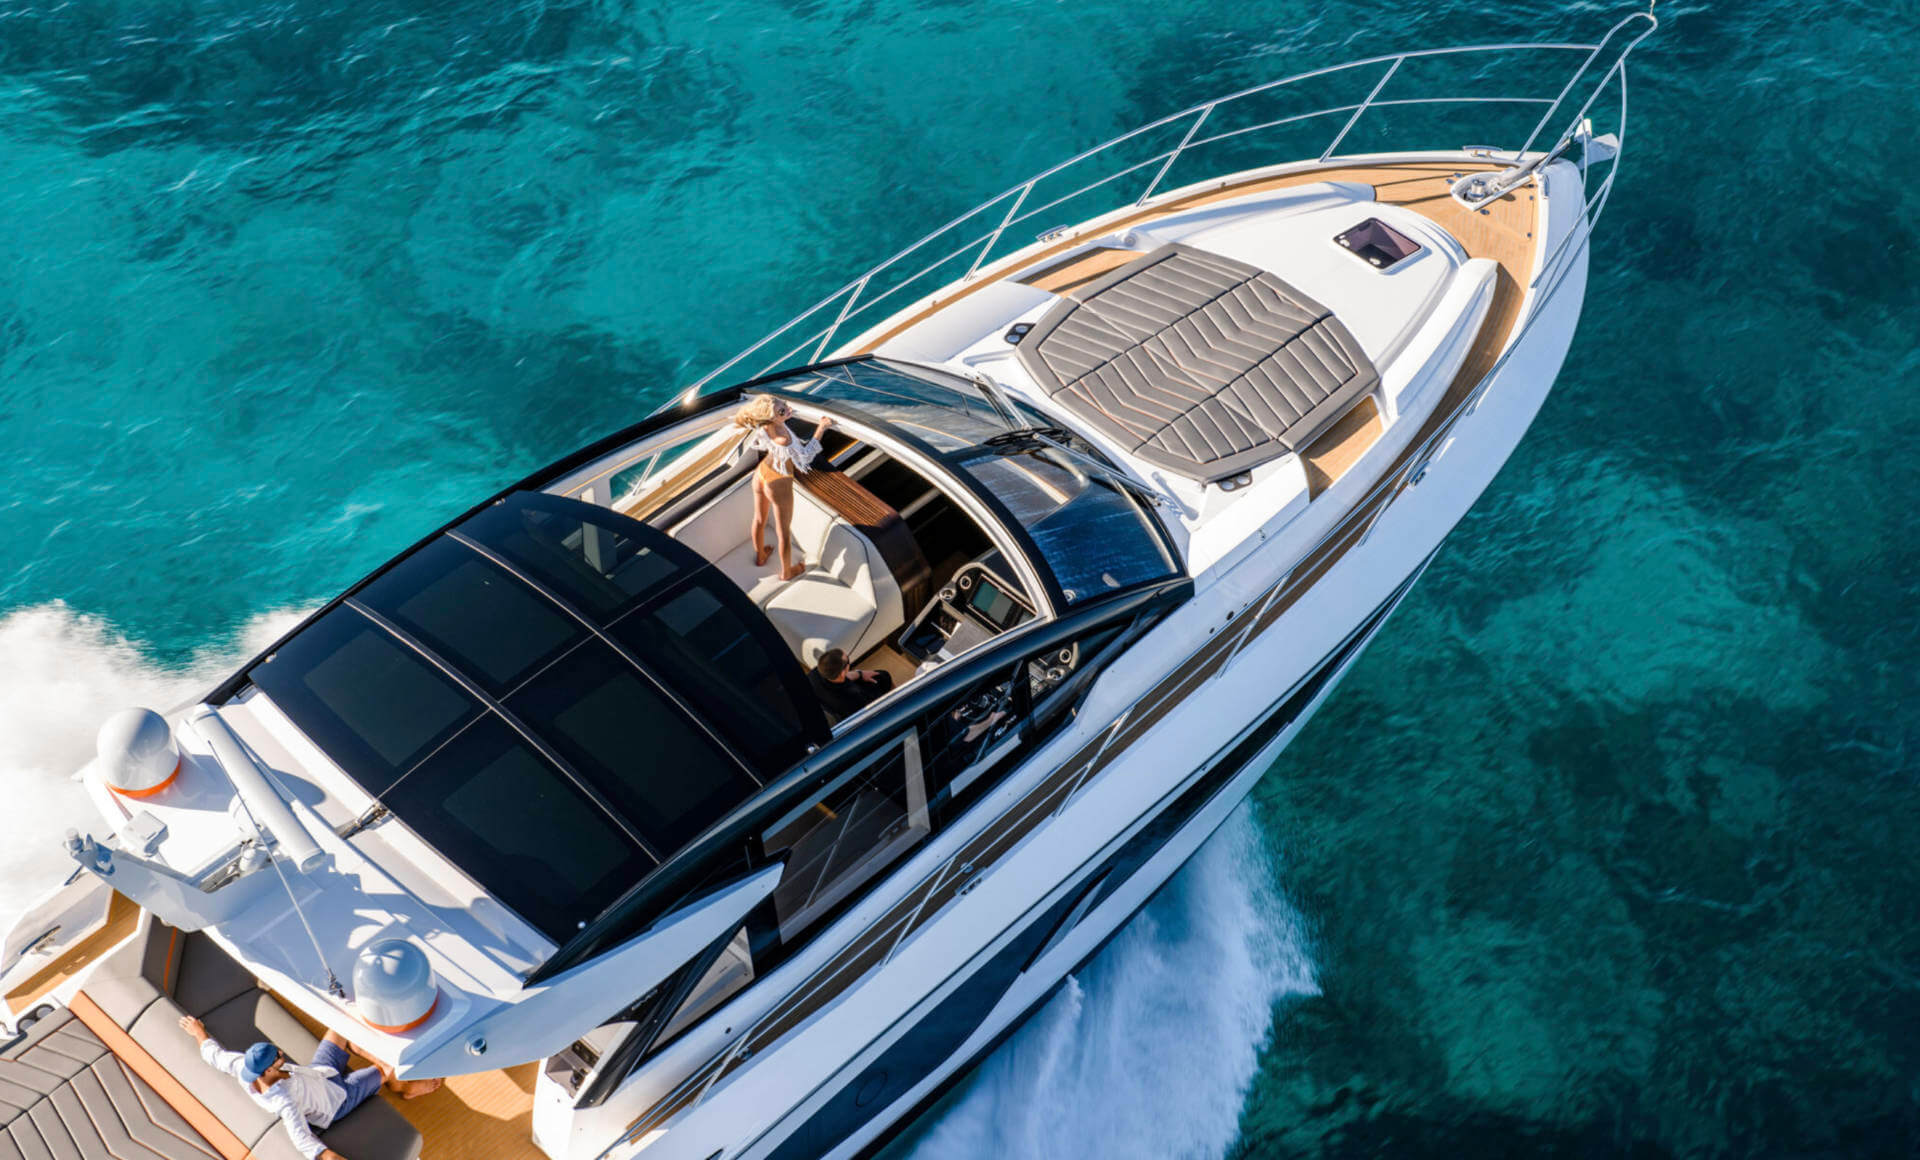 LUXURIA LIFESTYLE WELCOMES SUNSEEKER LONDON GROUP AS A NEW PLATINUM PARTNER